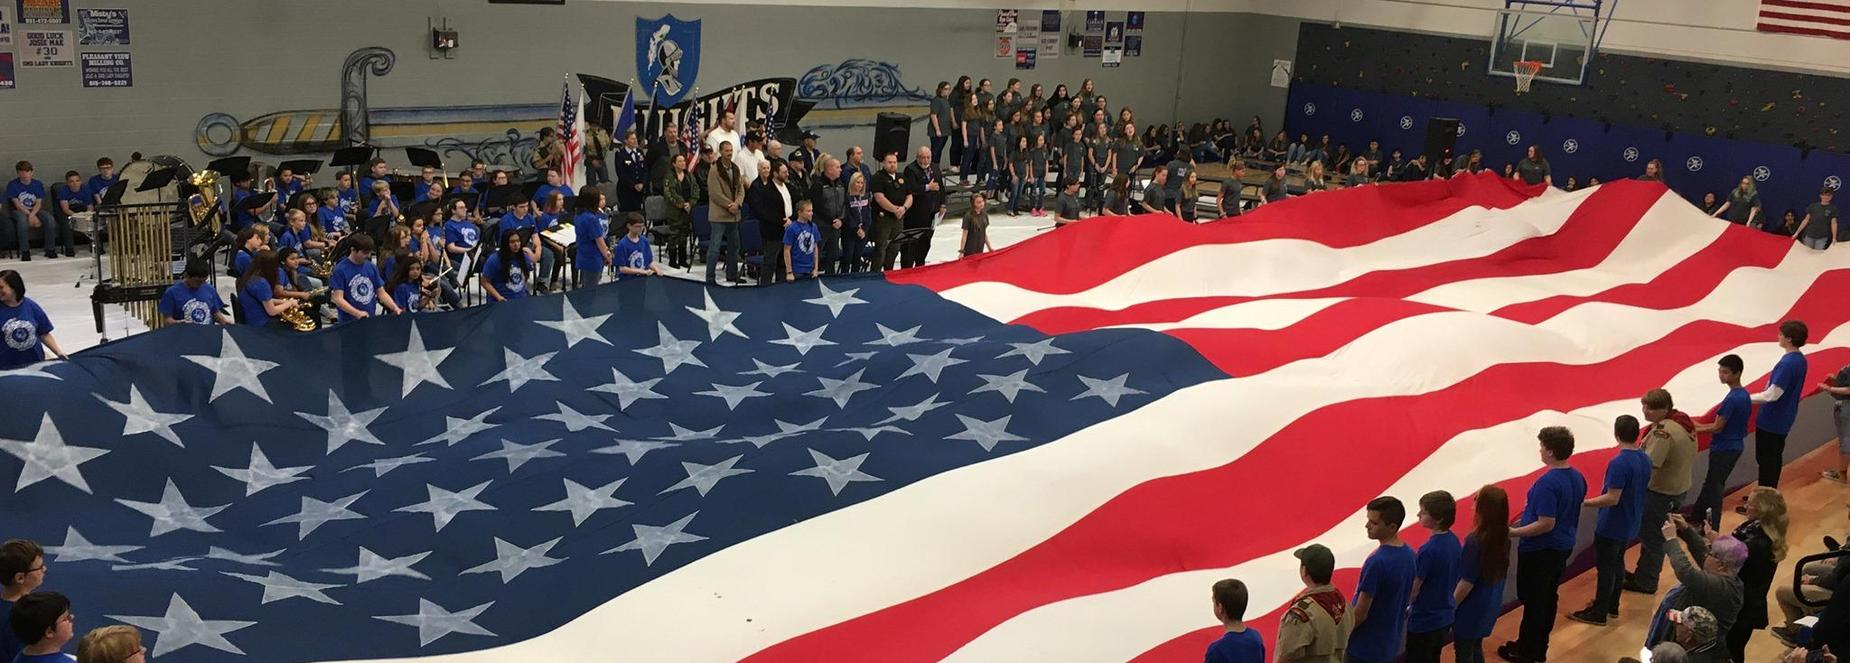 The Sycamore Middle School Veterans Day program.